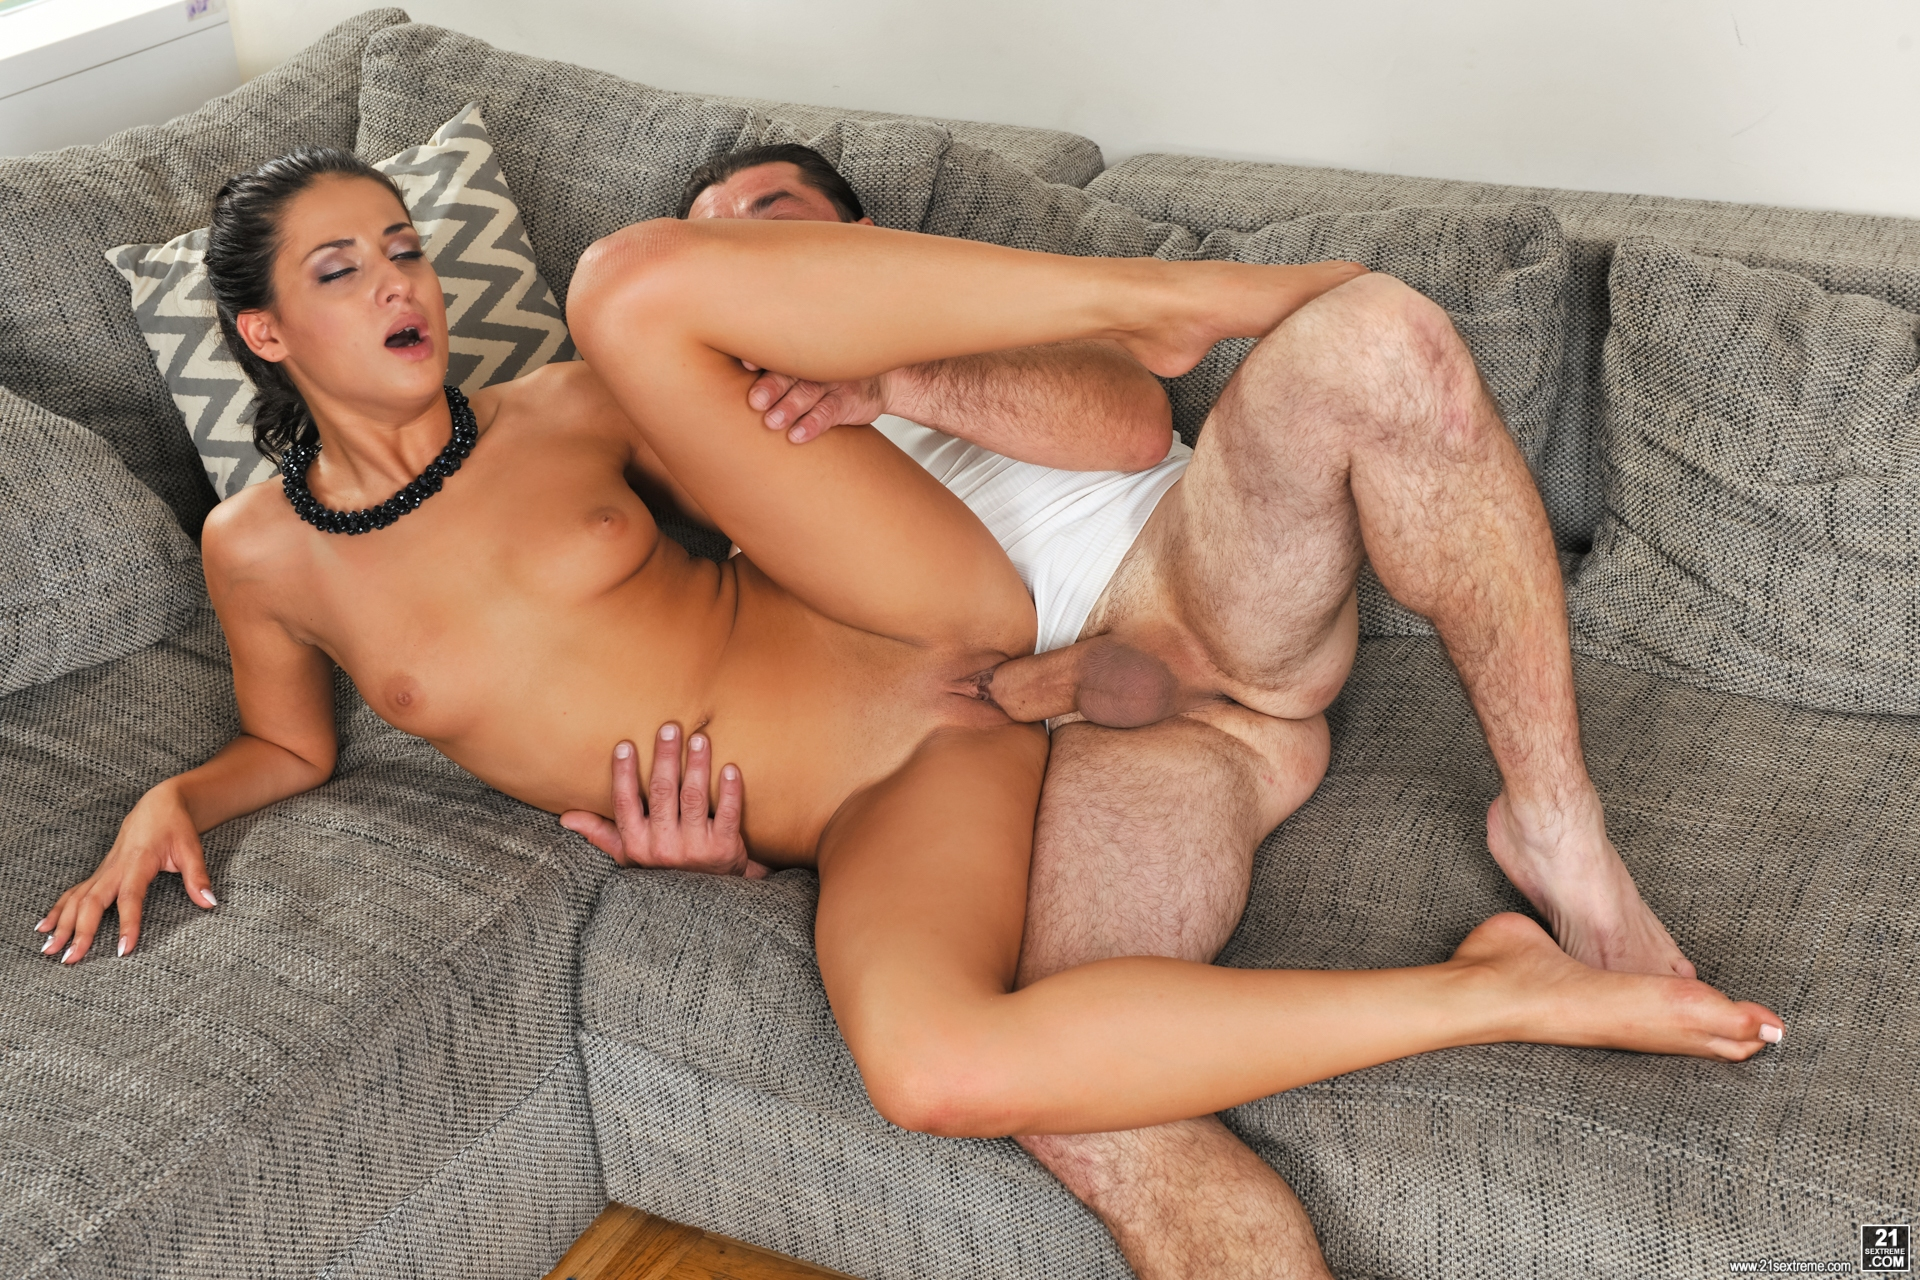 garls sex hot spanesh